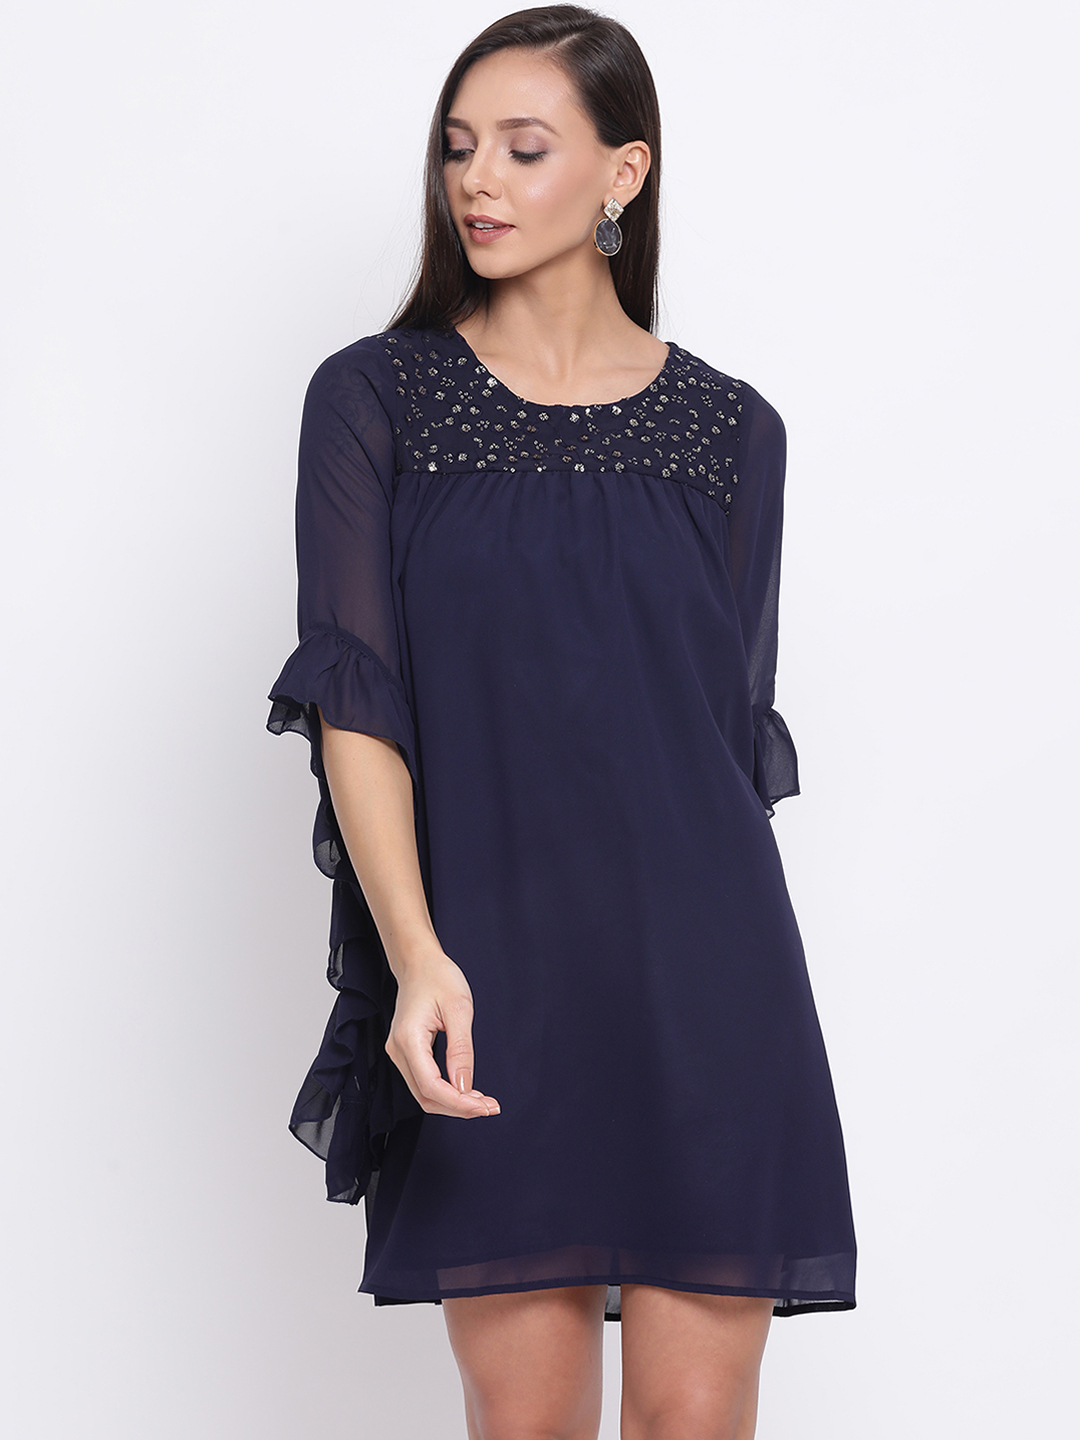 DRAAX fashions   DRAAX FASHIONS Women Blue Embellished Fit and Flare Dress